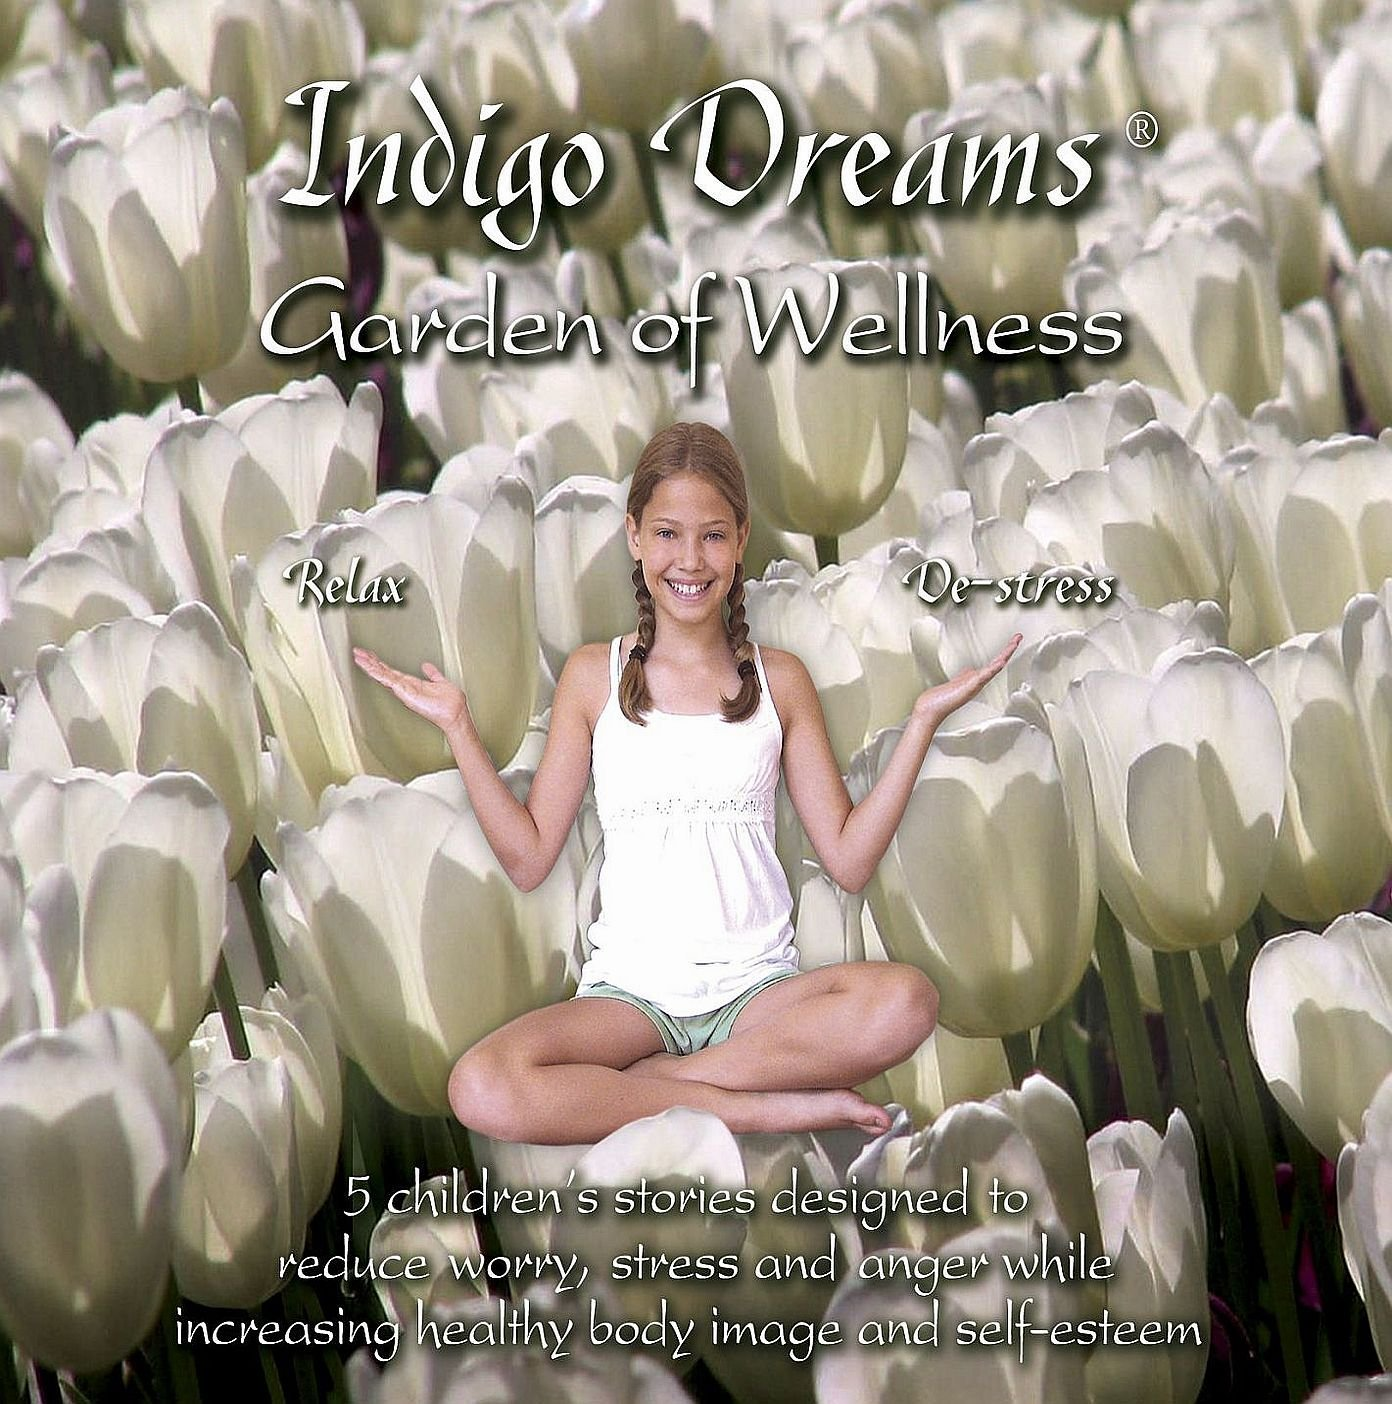 Indigo Dreams: Garden of Wellness Stories And Techniques Designed to Decrease Stress, Anger, Anxiety While Promoting Self-esteem ages 5-10 (Indigo Dreams)